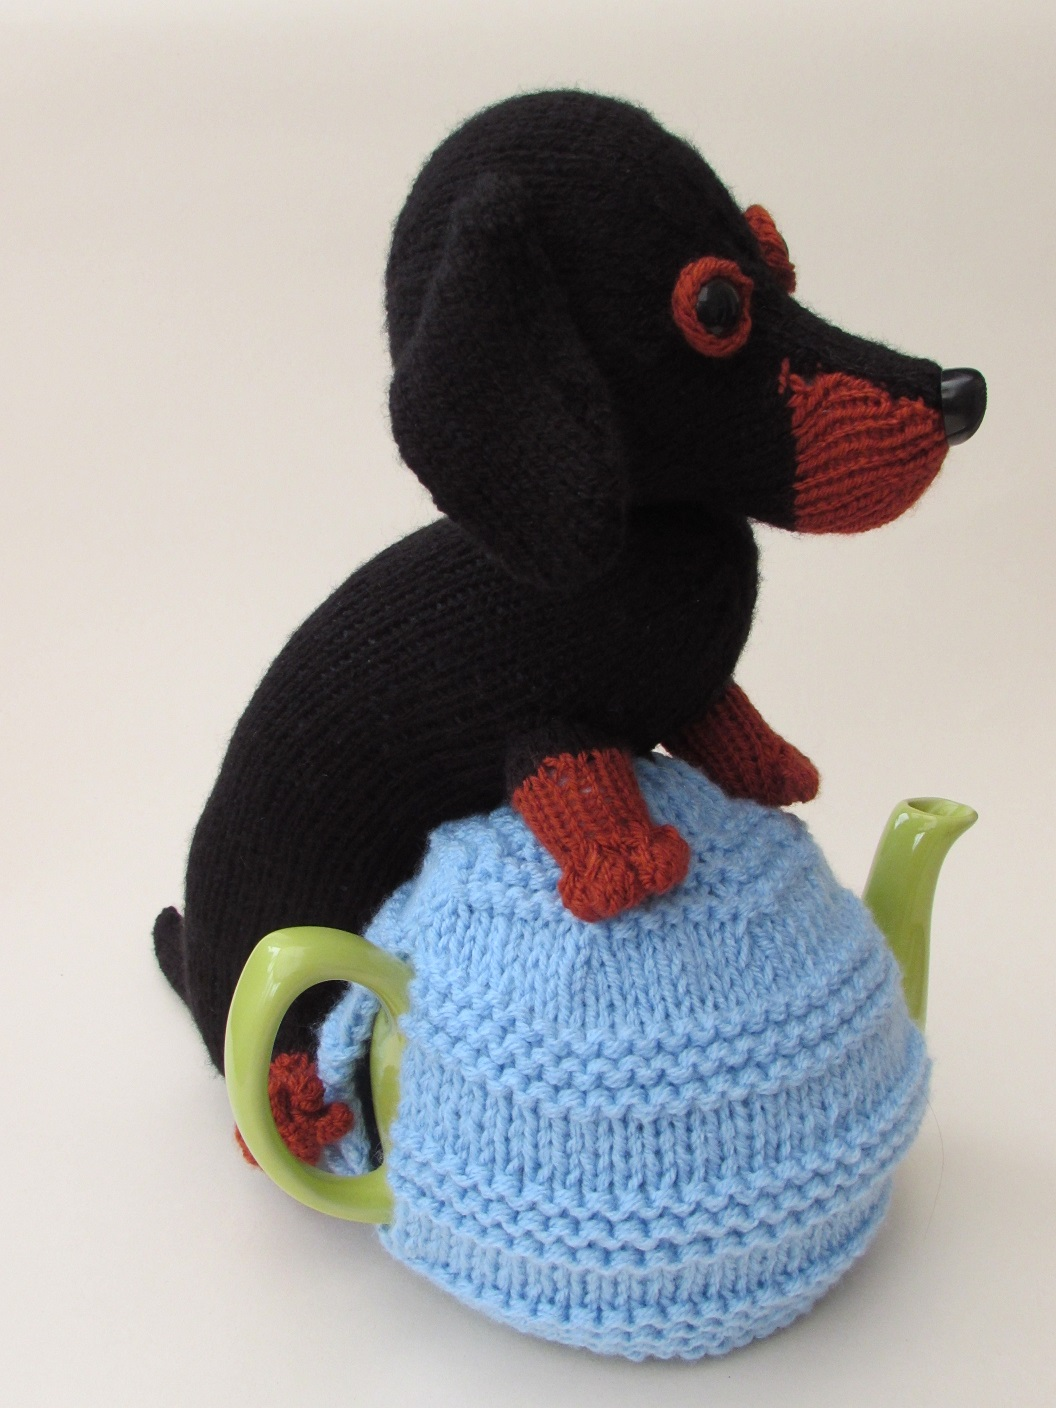 Dachshund tea cosy knitting pattern side view bankloansurffo Gallery